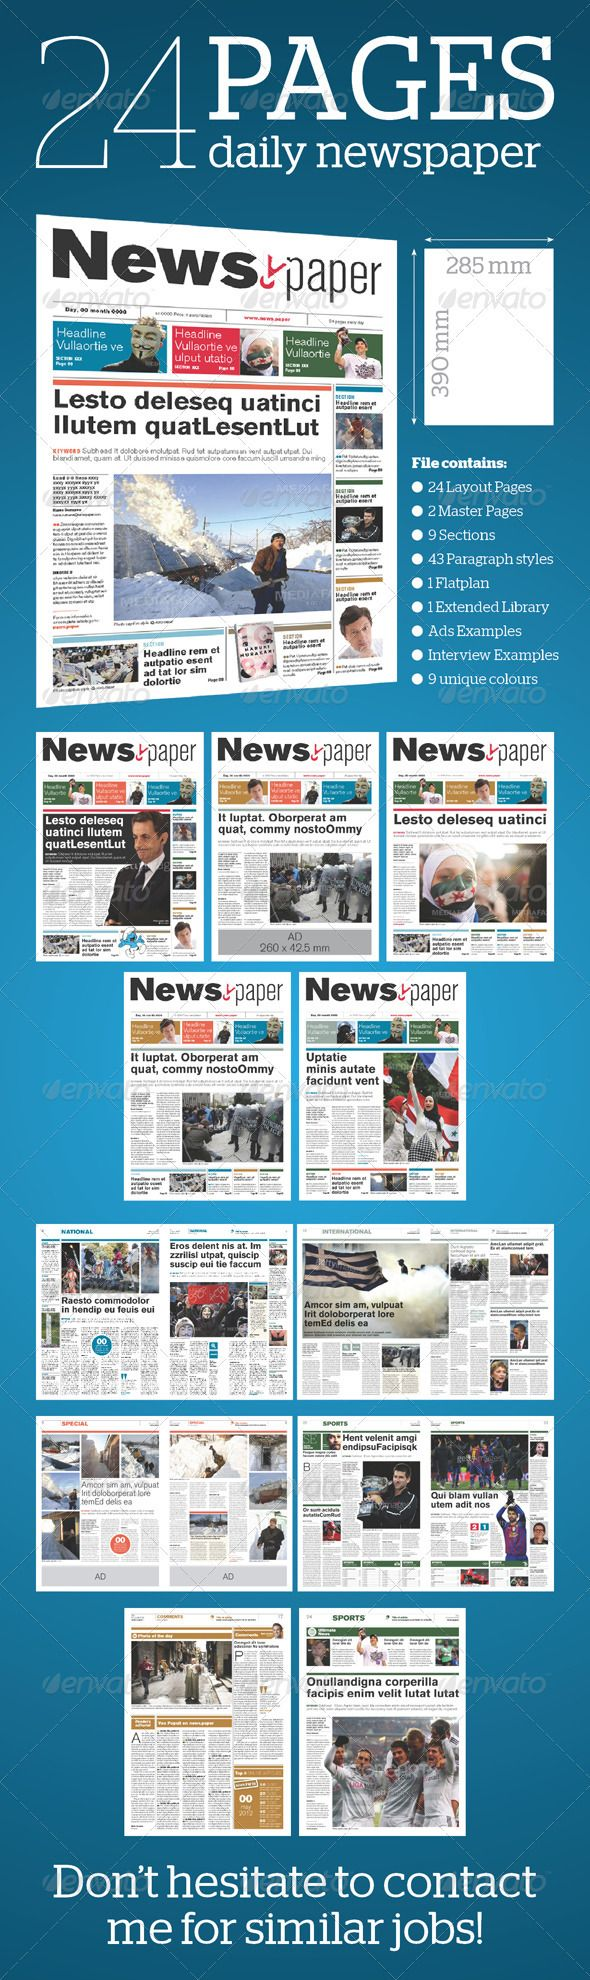 24 Pages Daily Newspaper | Newsletter templates